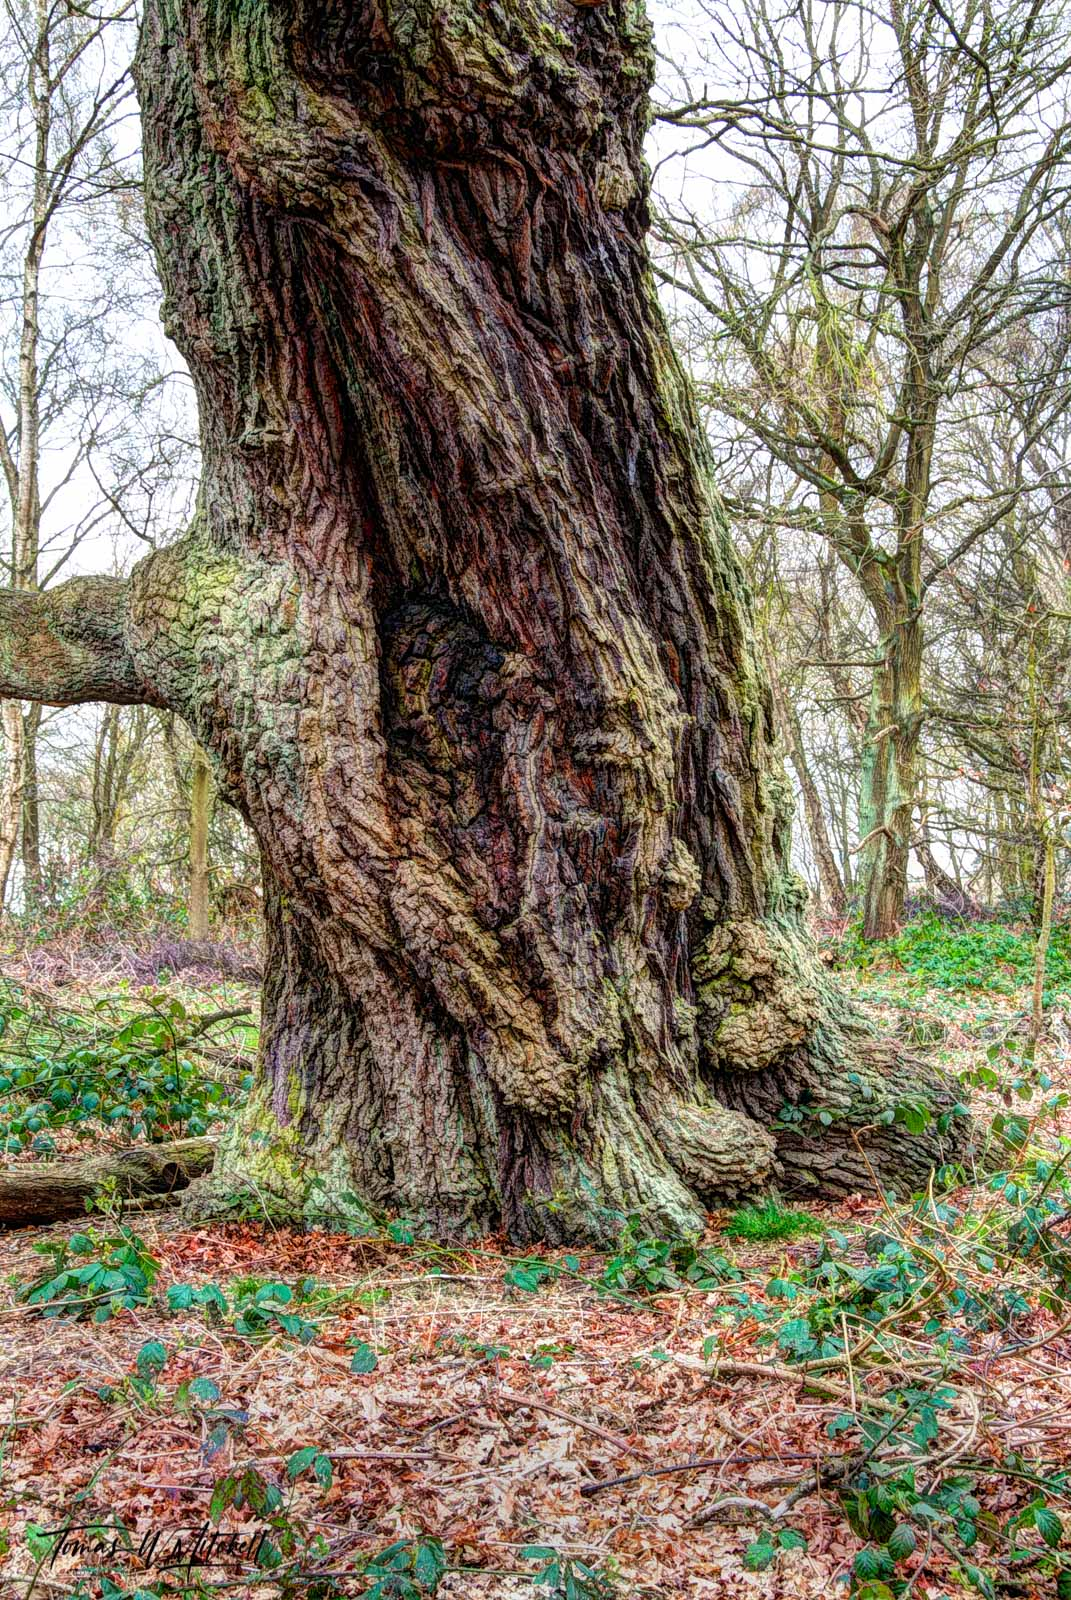 limited edition, fine art, prints, museum grade, photograph, ent, sherwood forest, england, forest, trees, roots, seasons, old tree, tree, nottinghamshire, woodland, heath, ancient, magic, ents, fanta, photo